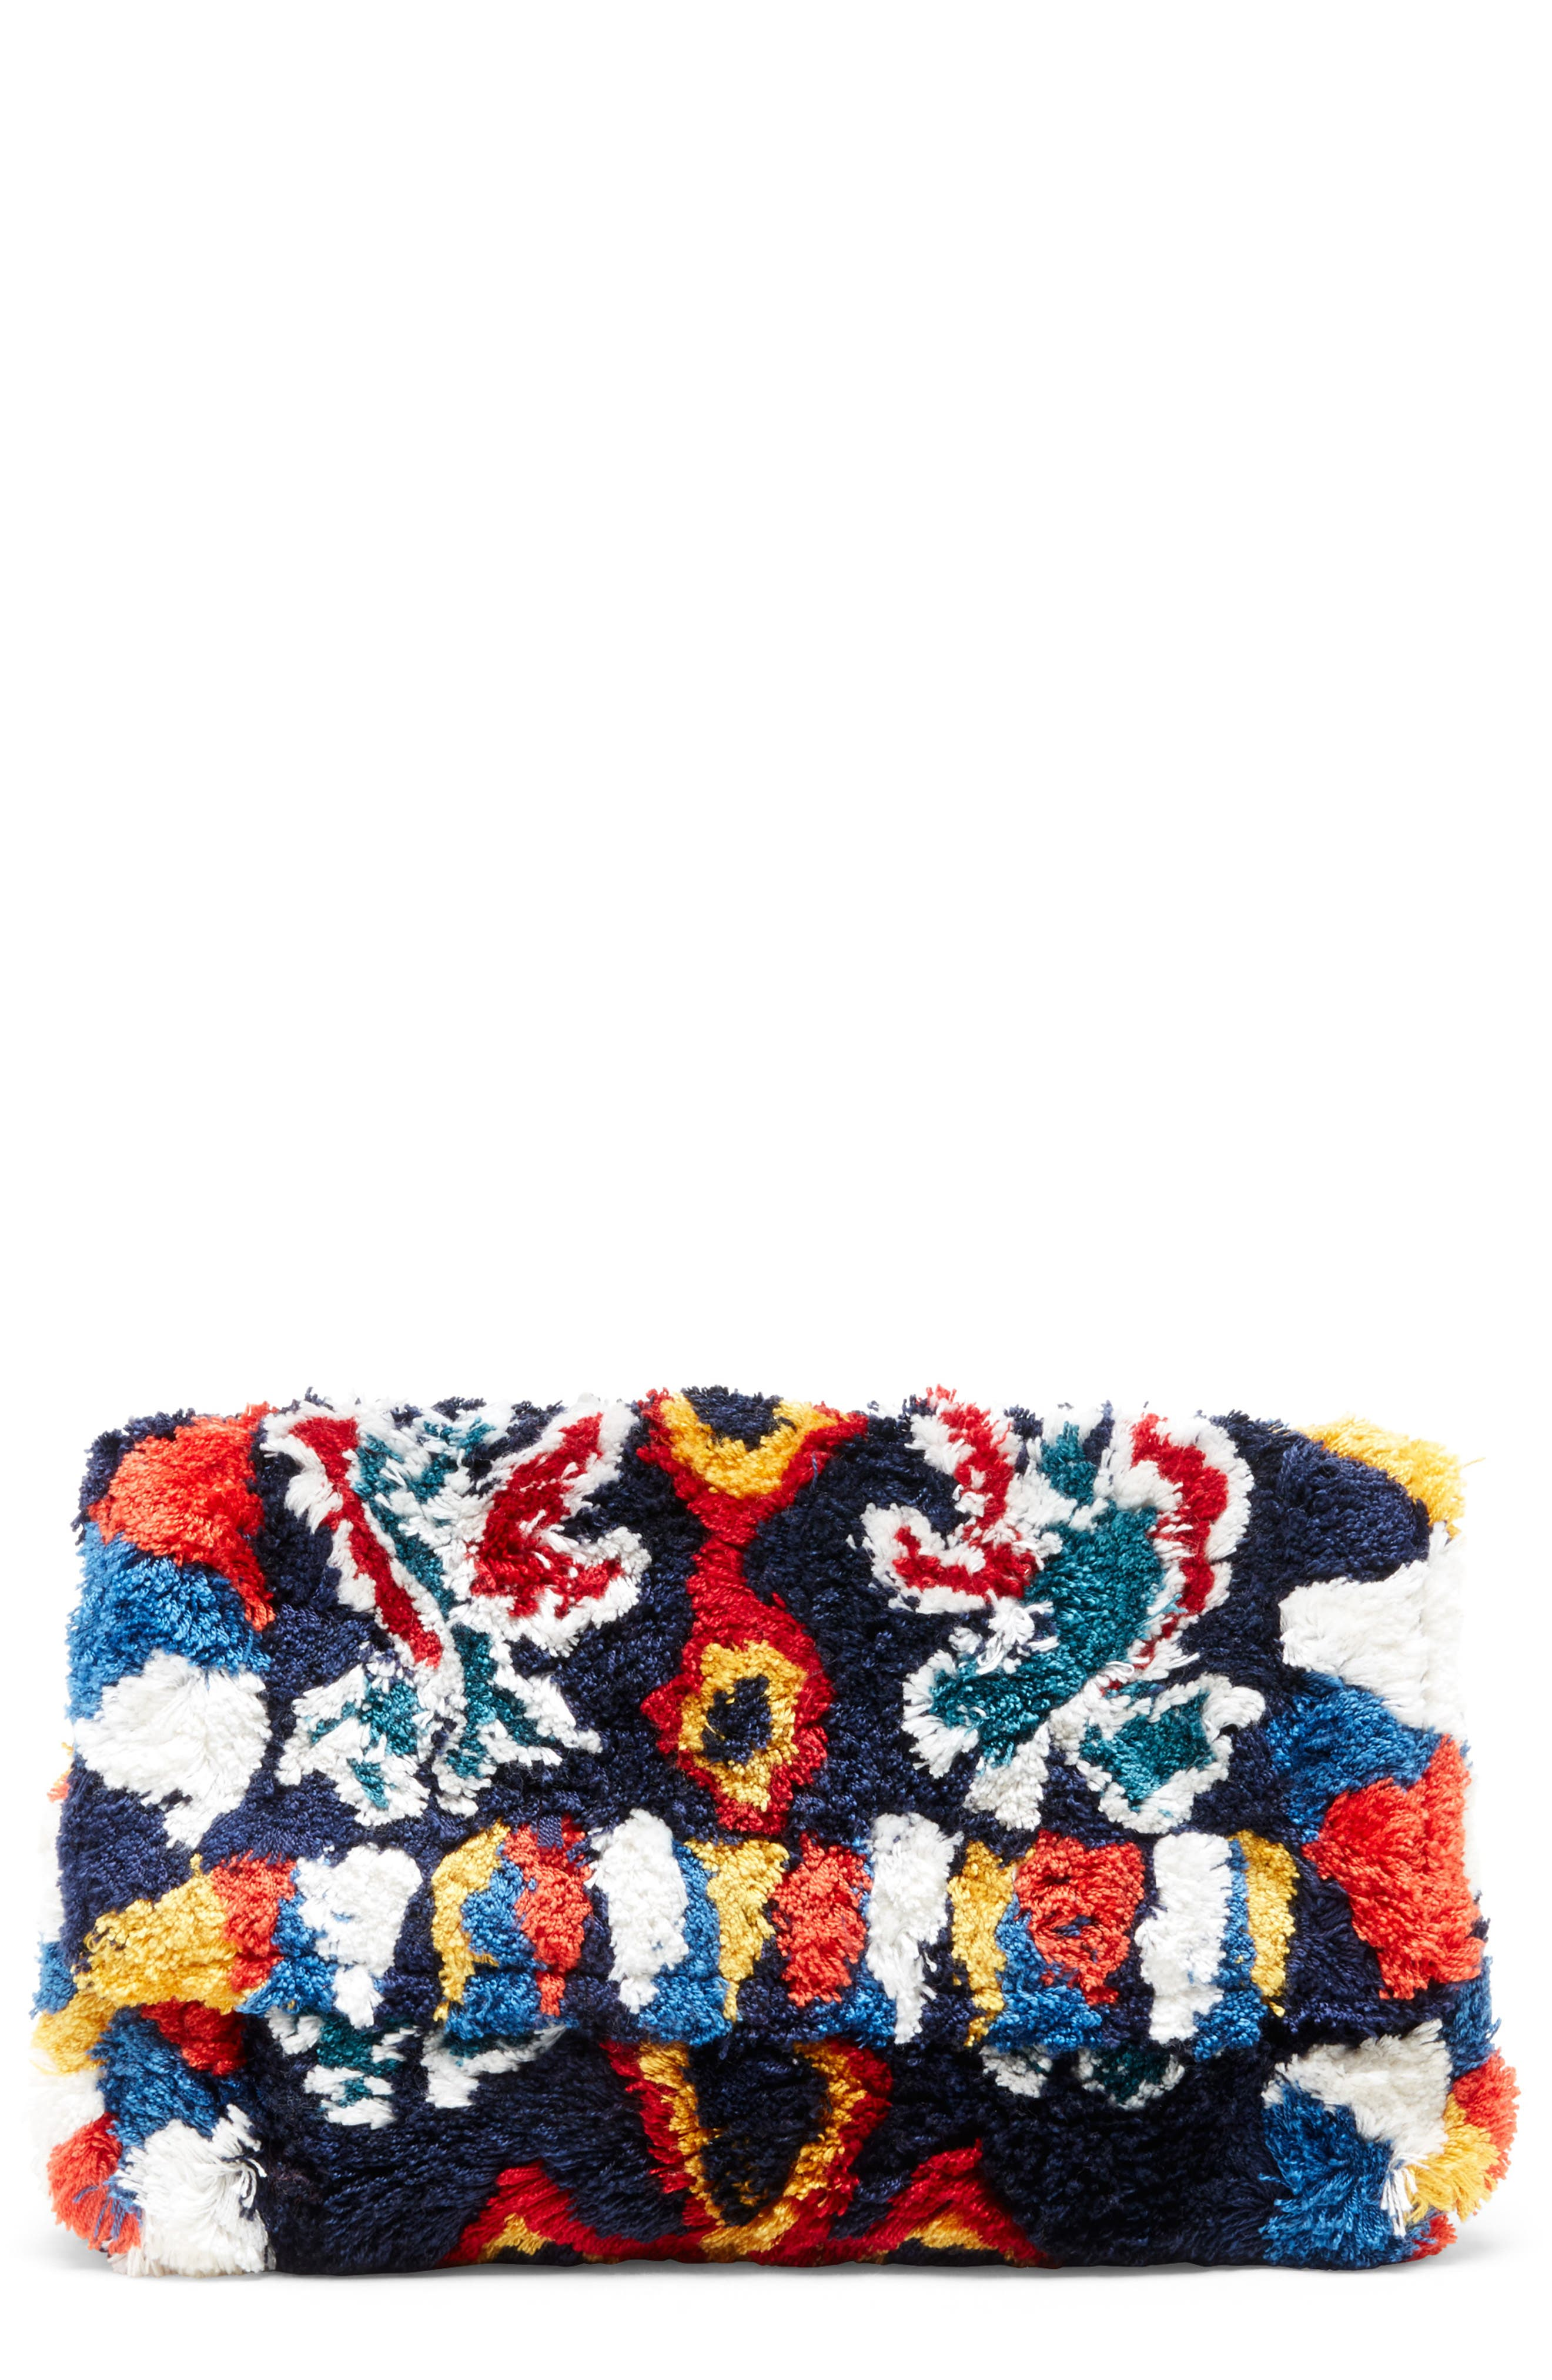 SOLE SOCIETY, Drury Clutch, Main thumbnail 1, color, 400